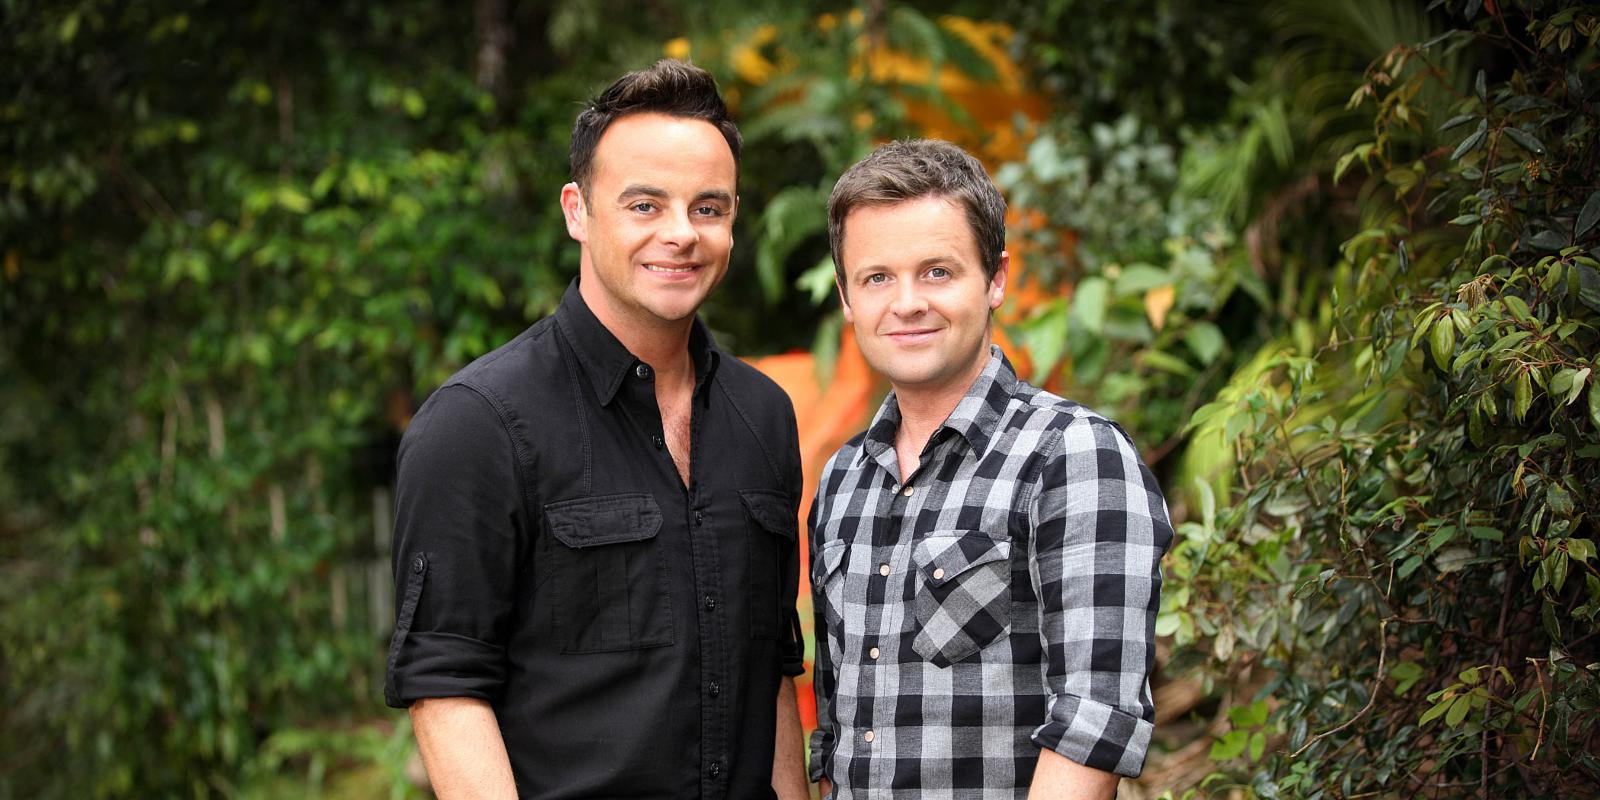 Ant & Dec Videos | Watch Ant & Dec Video Clips on Fanpop